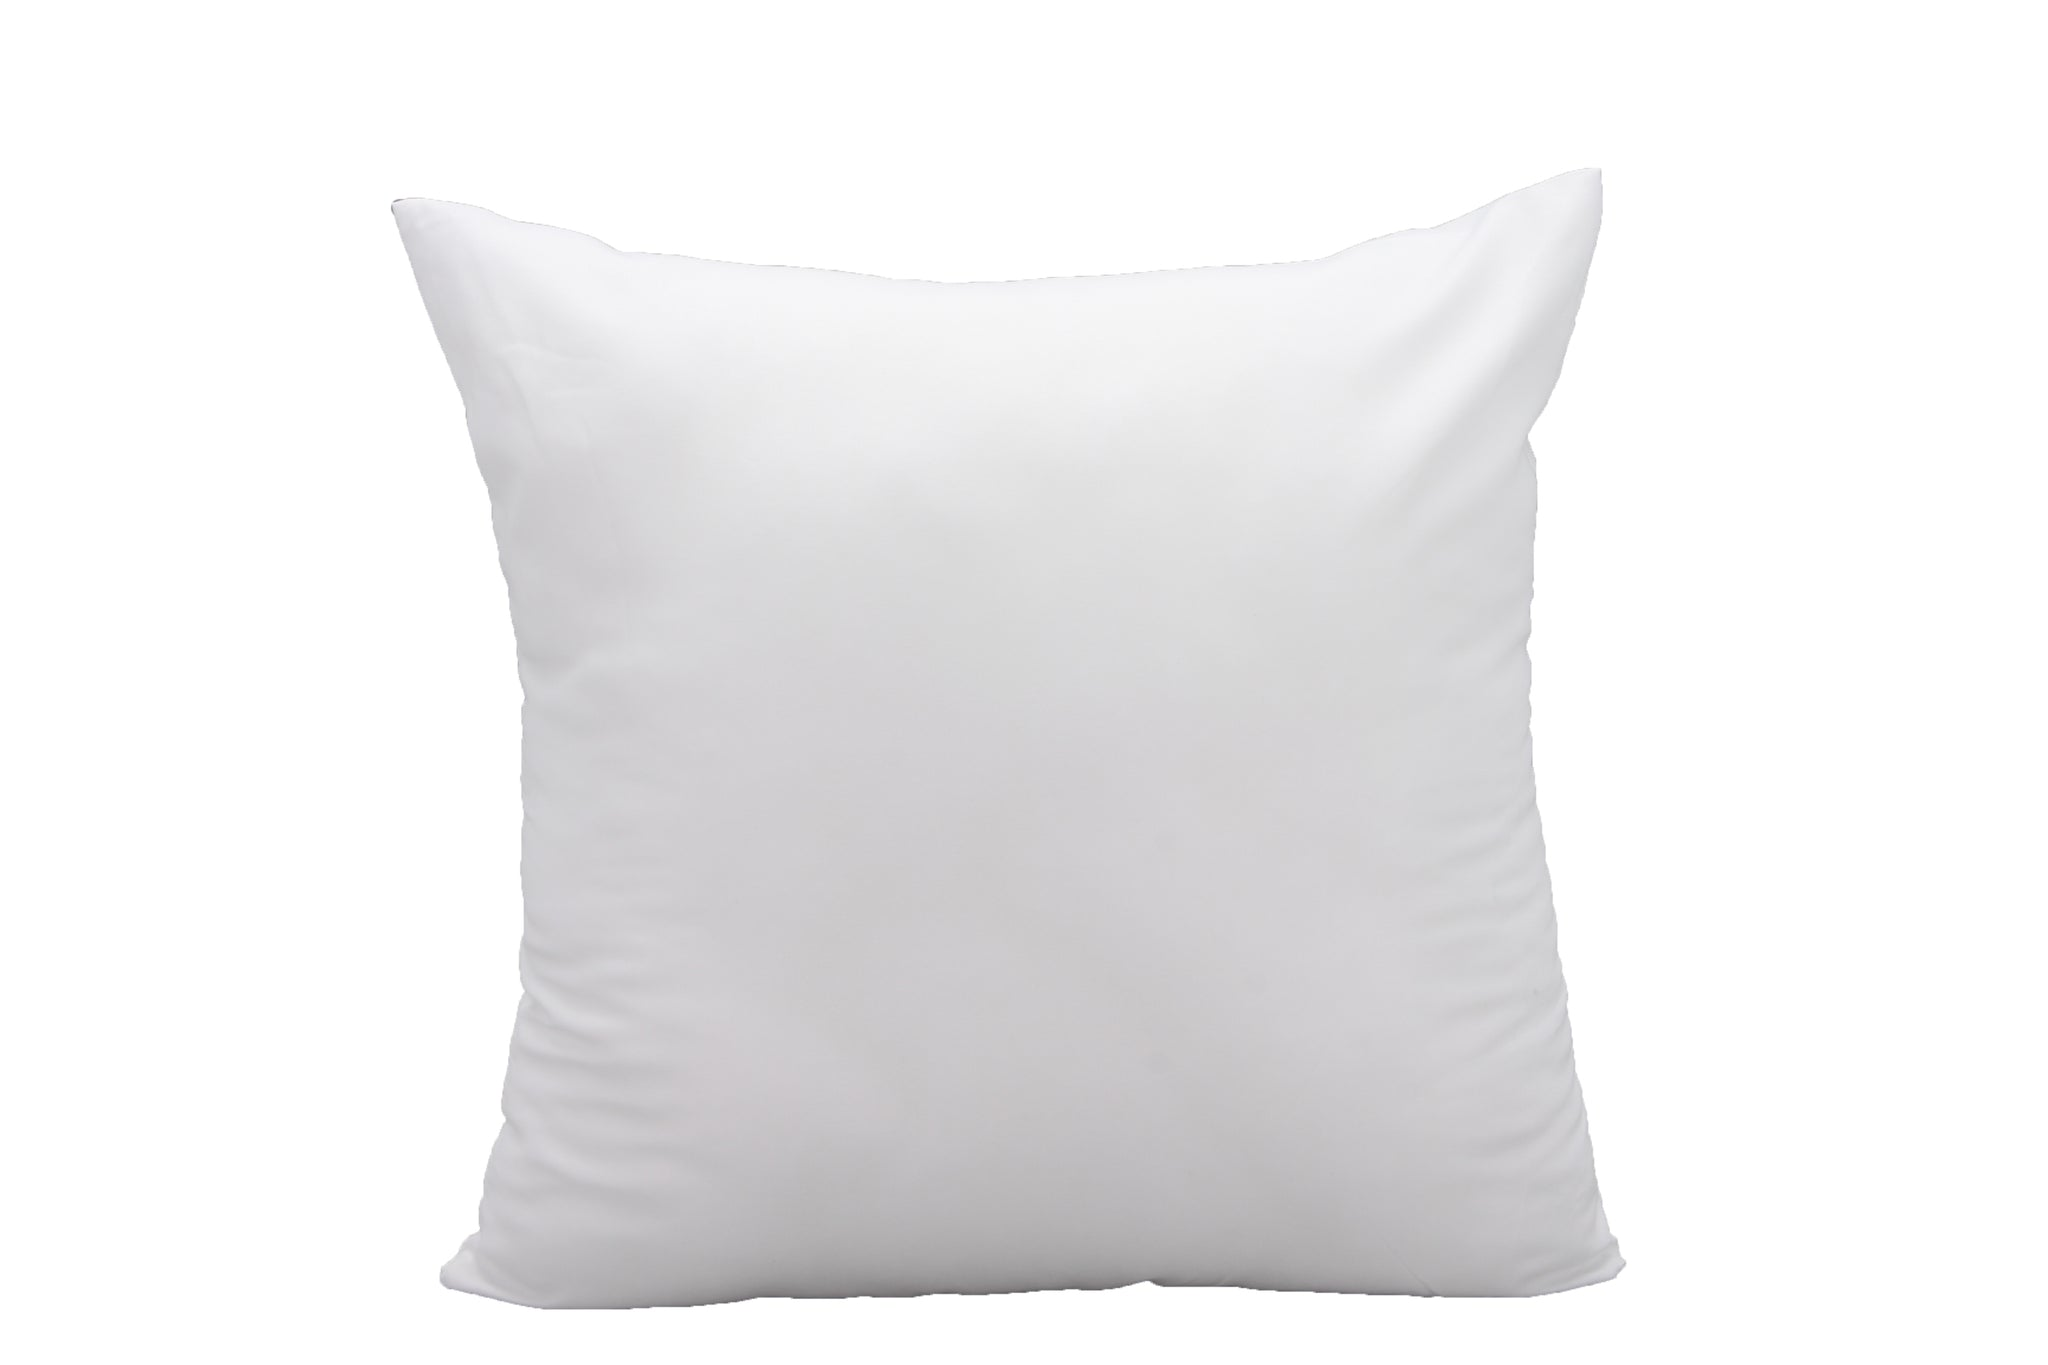 Pal Fabric Square Pillow Insert For Sham Or Decorative Pillow For 20x2 Pal Usa Store